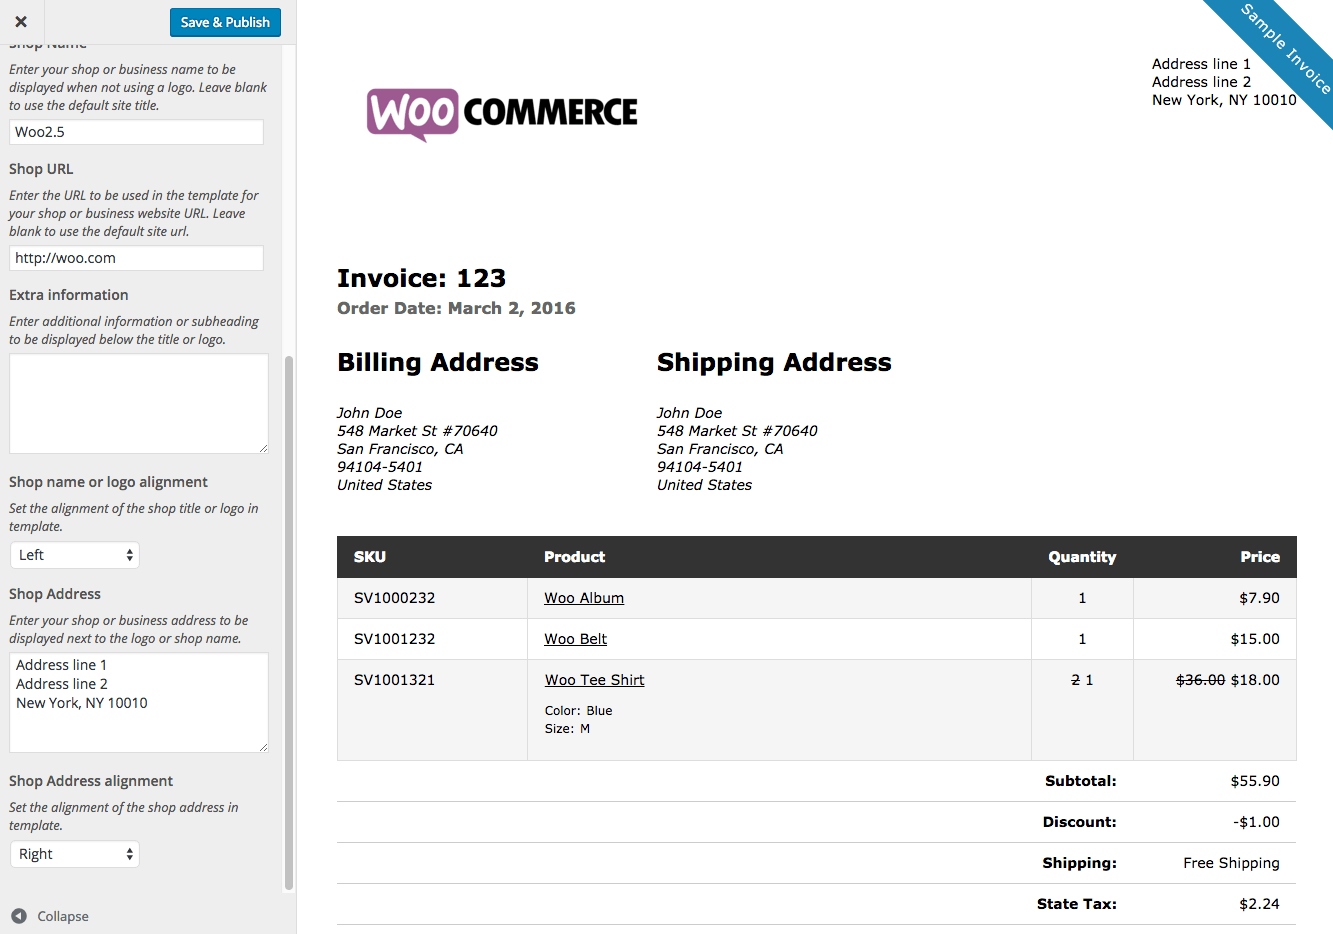 Pigbrotherus  Fascinating Woocommerce Print Invoices Amp Packing Lists  Woocommerce Docs With Lovable Woocommerce Print Invoices  Packing Lists Customizer With Amusing Best Invoice Designs Also Dodge Invoice Price In Addition Quotes And Invoices And Invoice Log Template As Well As Tax Invoice Sample Template Additionally Service Invoices Templates Free From Docswoocommercecom With Pigbrotherus  Lovable Woocommerce Print Invoices Amp Packing Lists  Woocommerce Docs With Amusing Woocommerce Print Invoices  Packing Lists Customizer And Fascinating Best Invoice Designs Also Dodge Invoice Price In Addition Quotes And Invoices From Docswoocommercecom